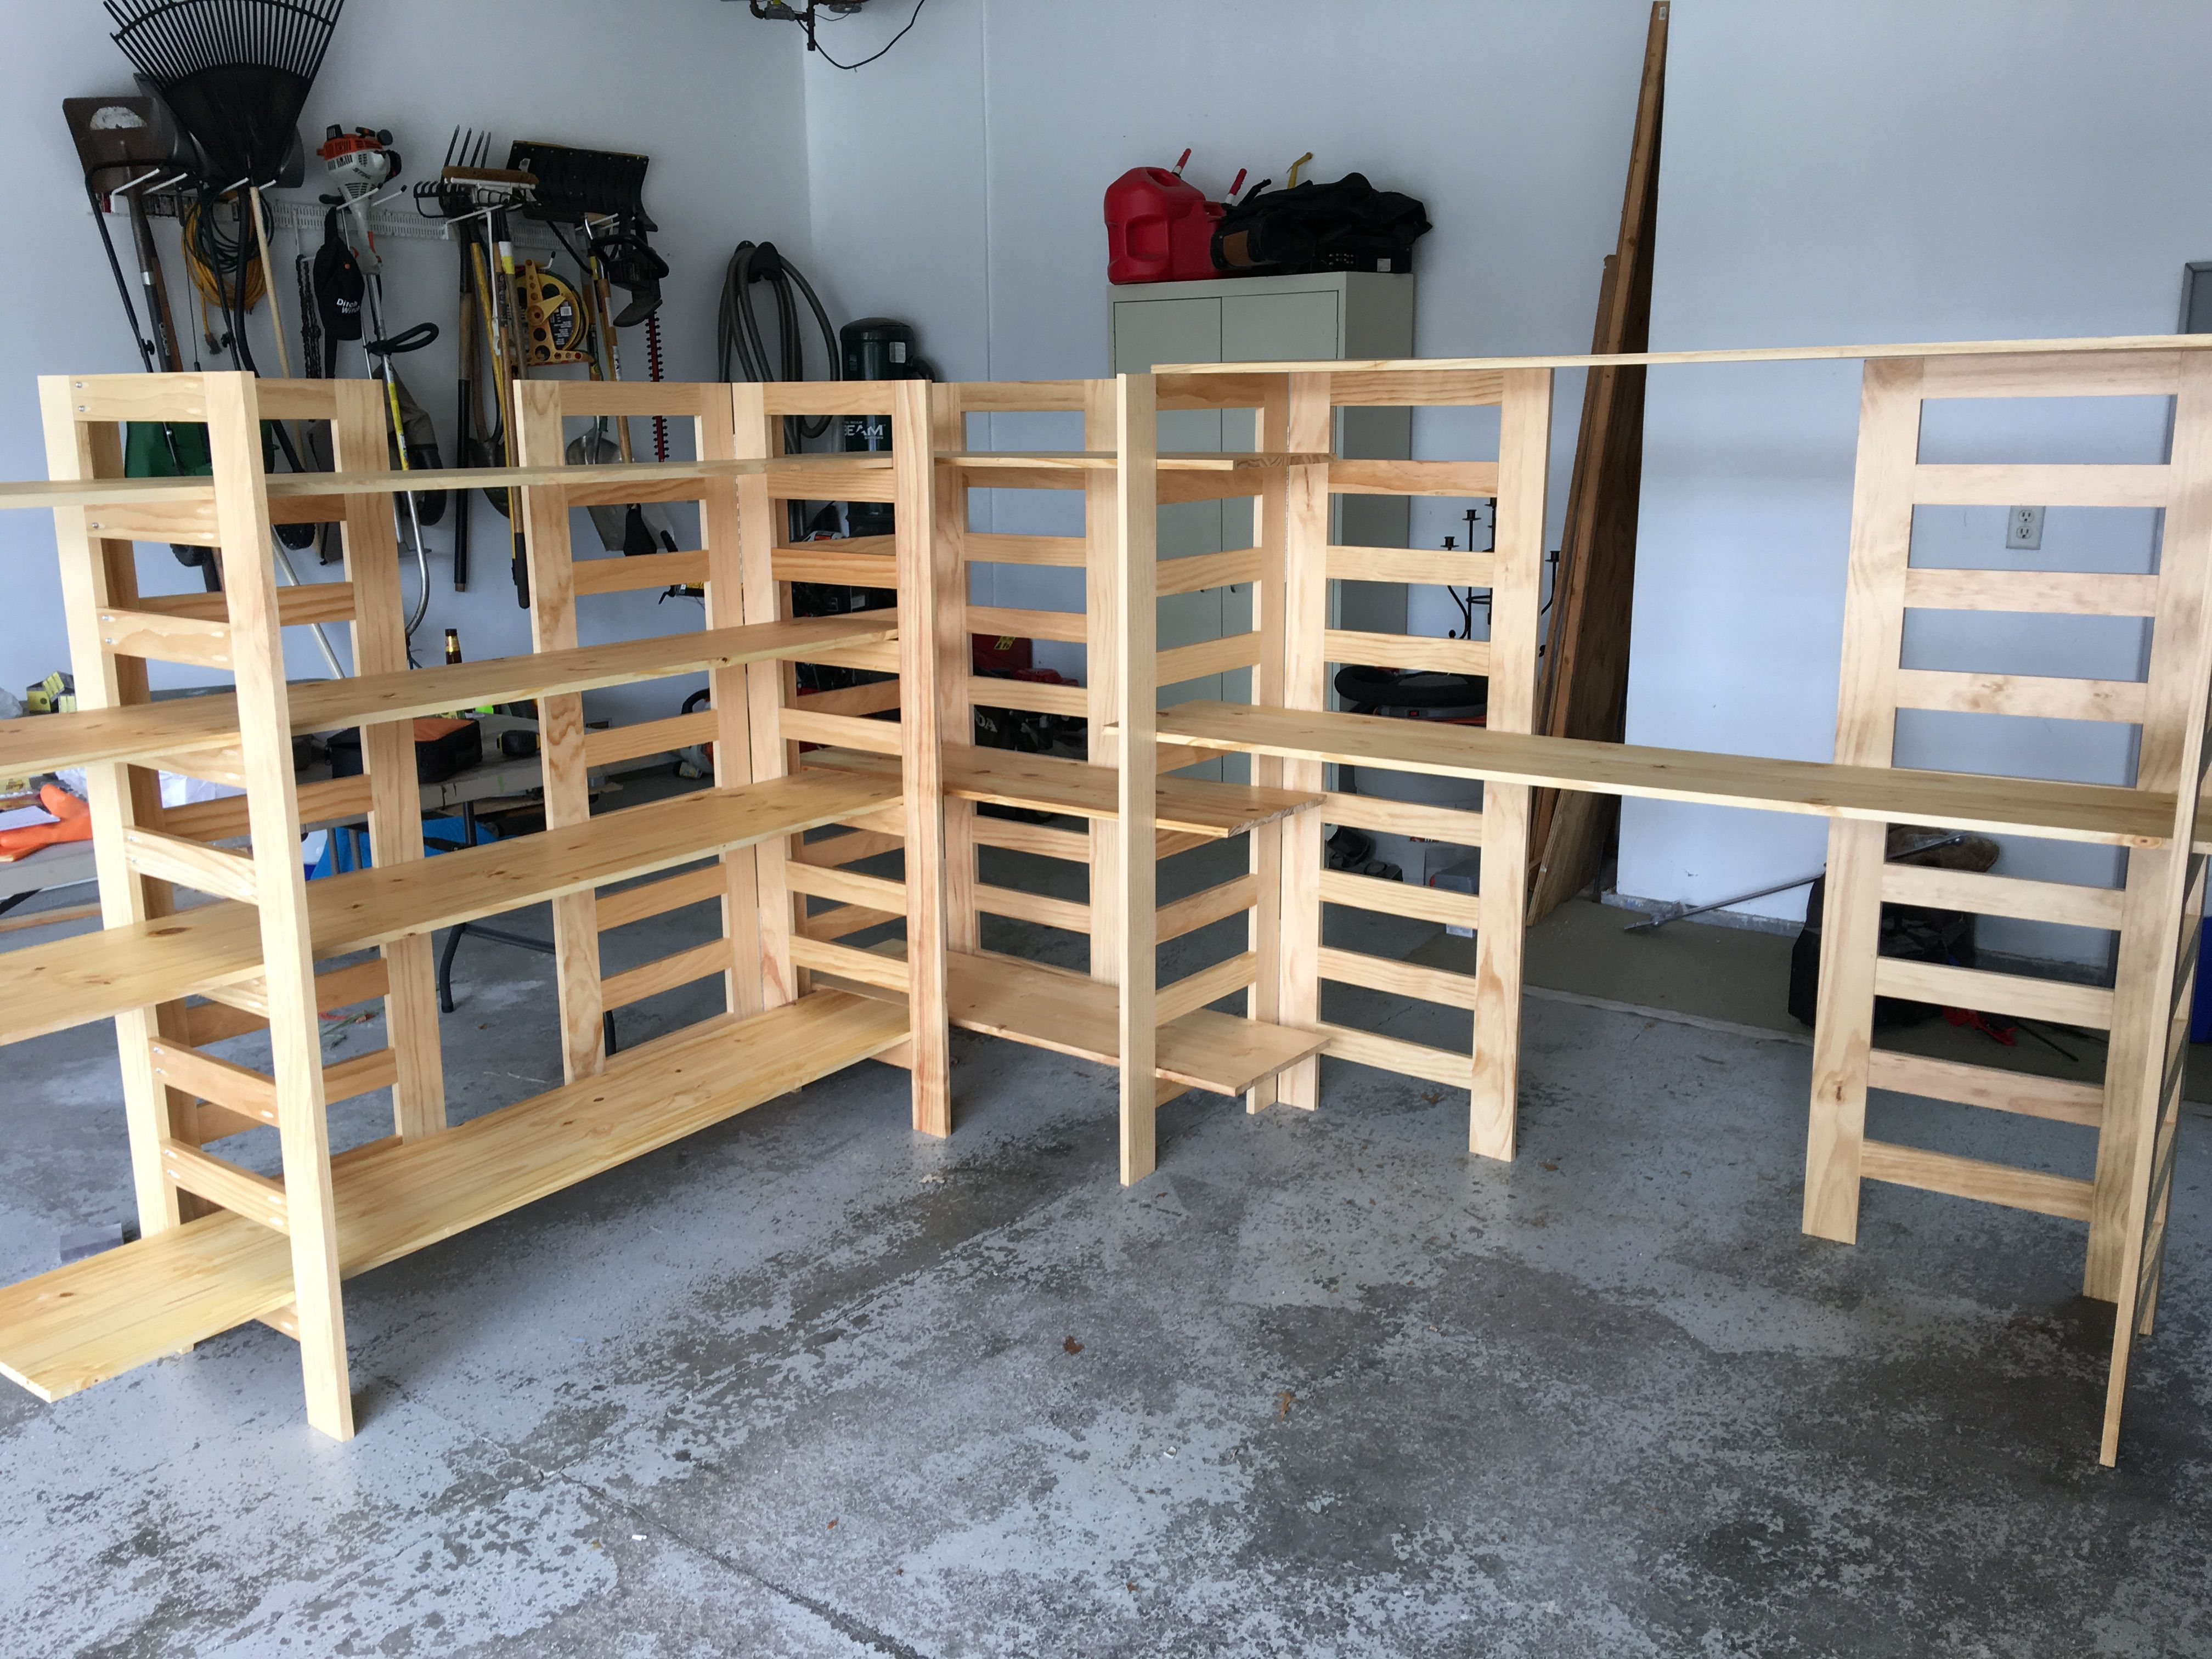 Art Booth Display Shelves Built By Husband--collapsable And